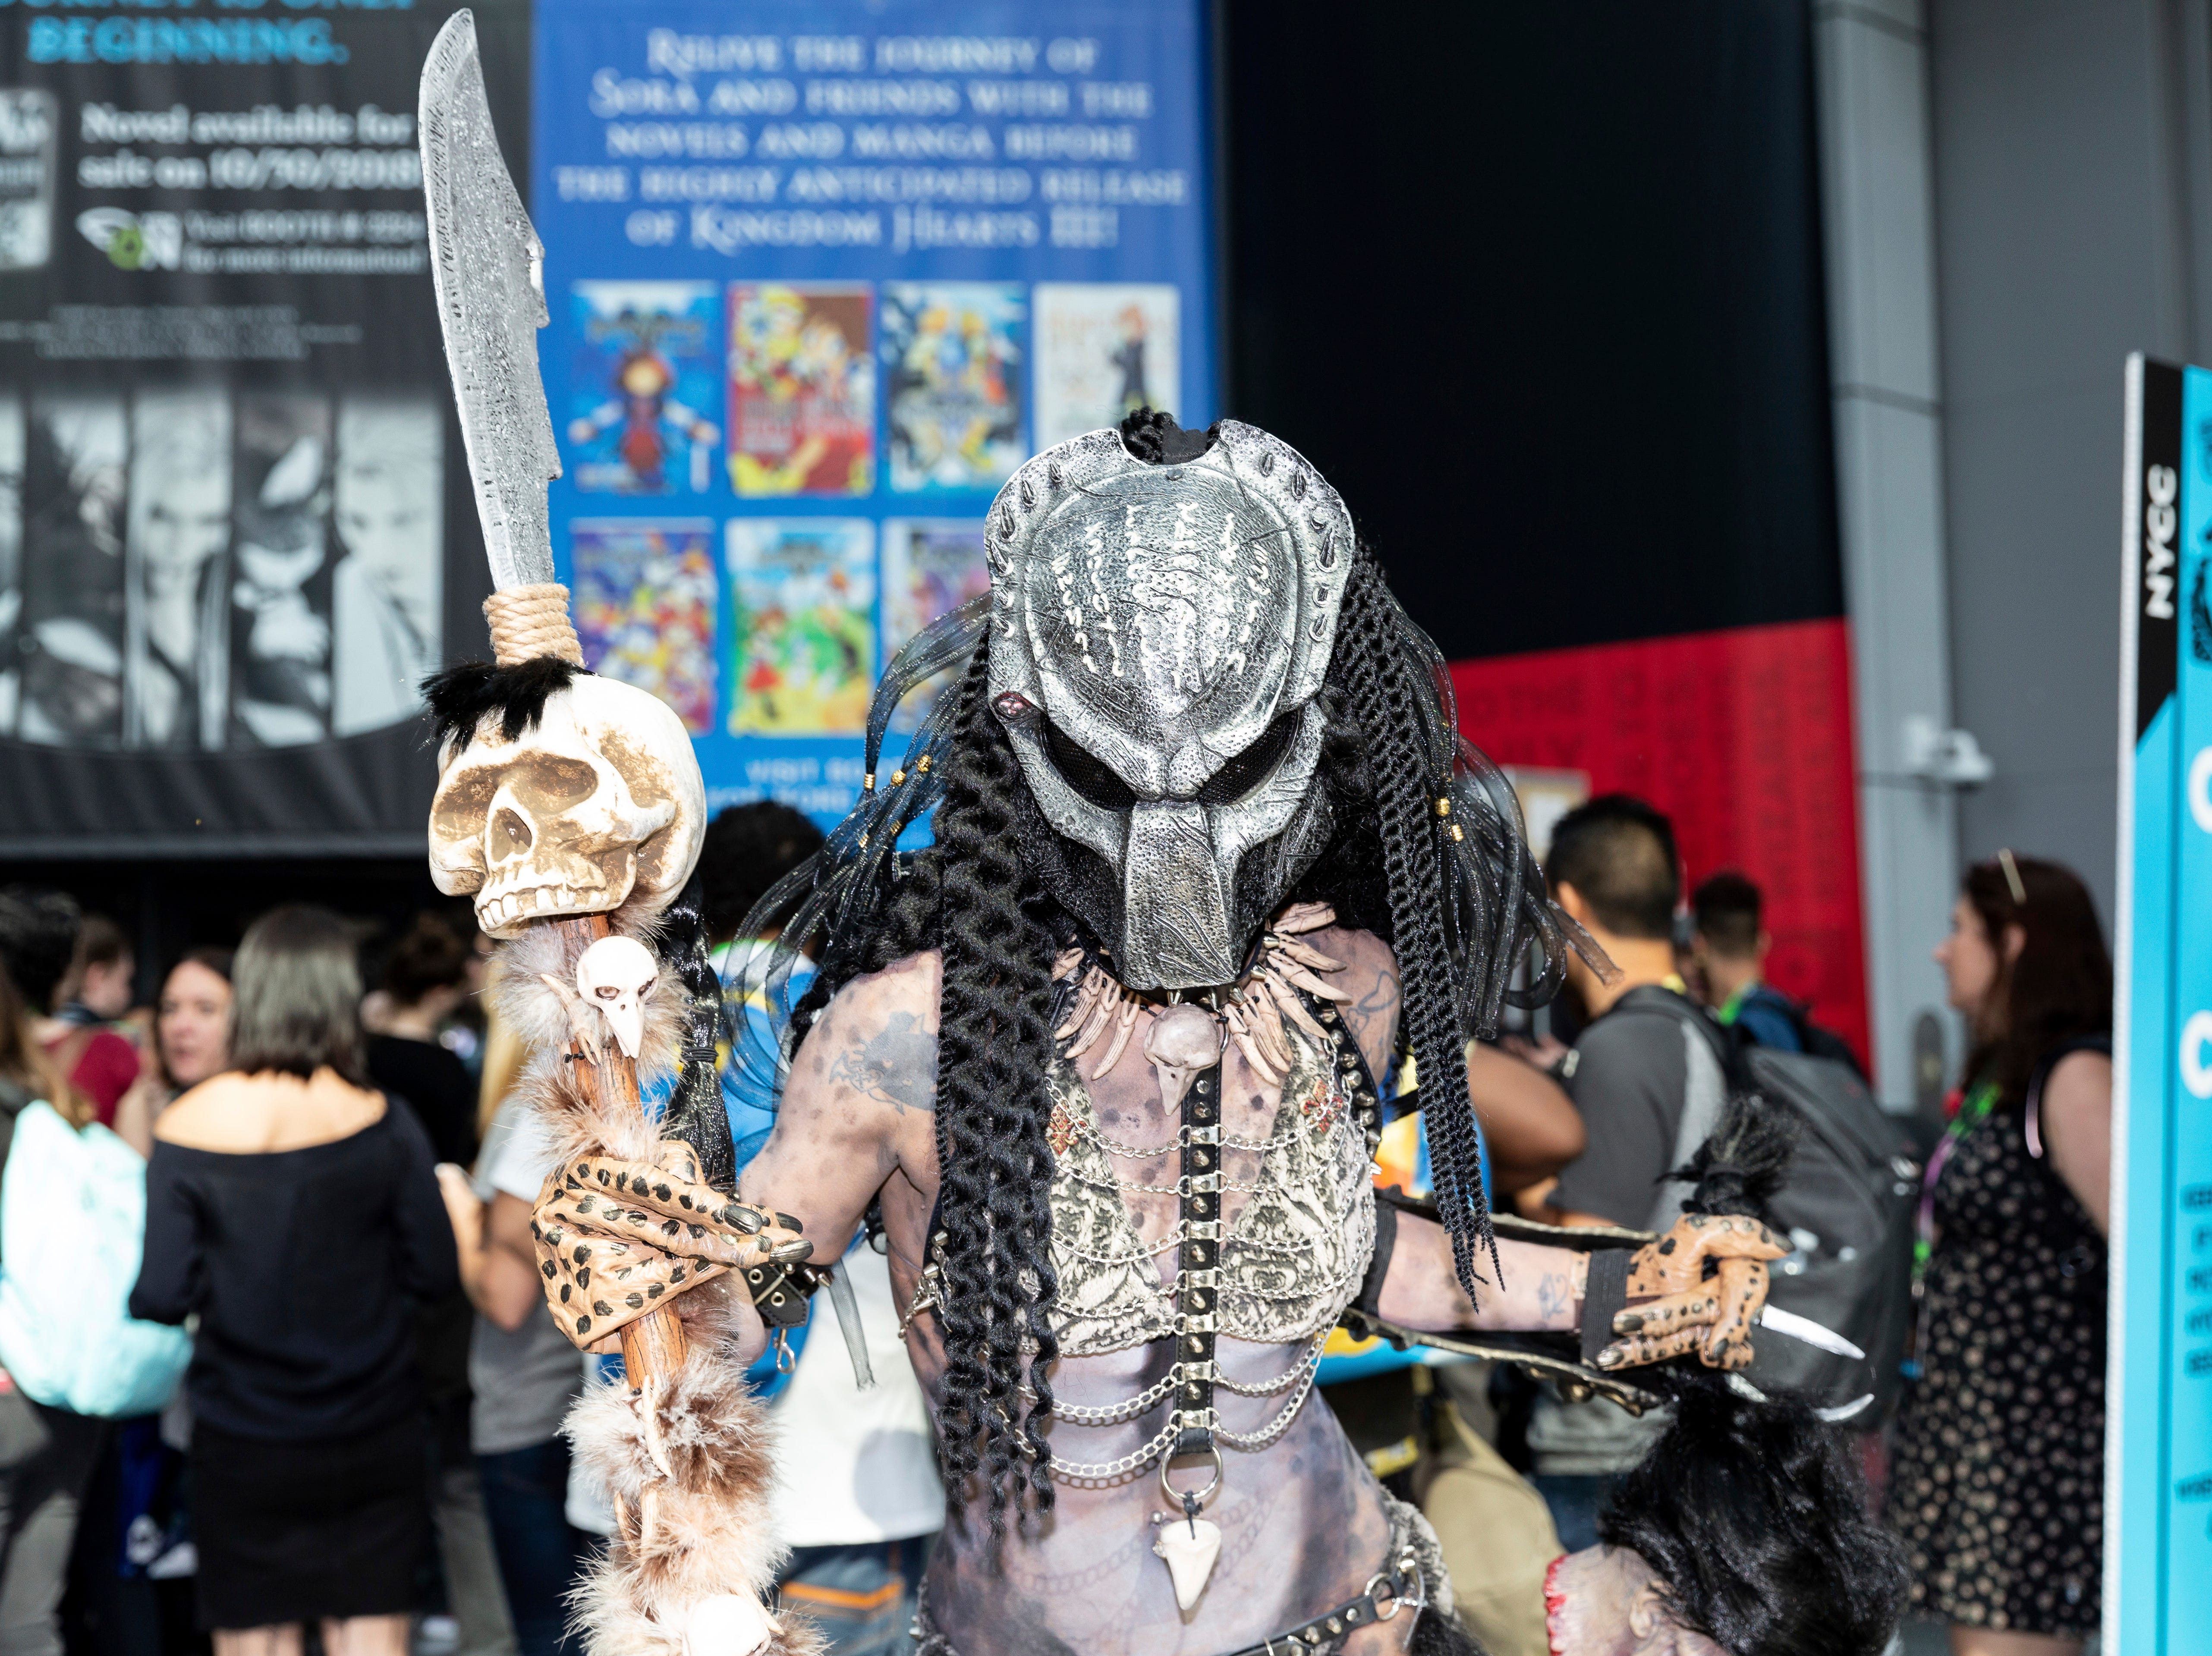 A fan dressed in costume poses for a photo during the first day of New York Comic Con, Thursday, Oct. 4, 2018. (AP Photo/Steve Luciano)